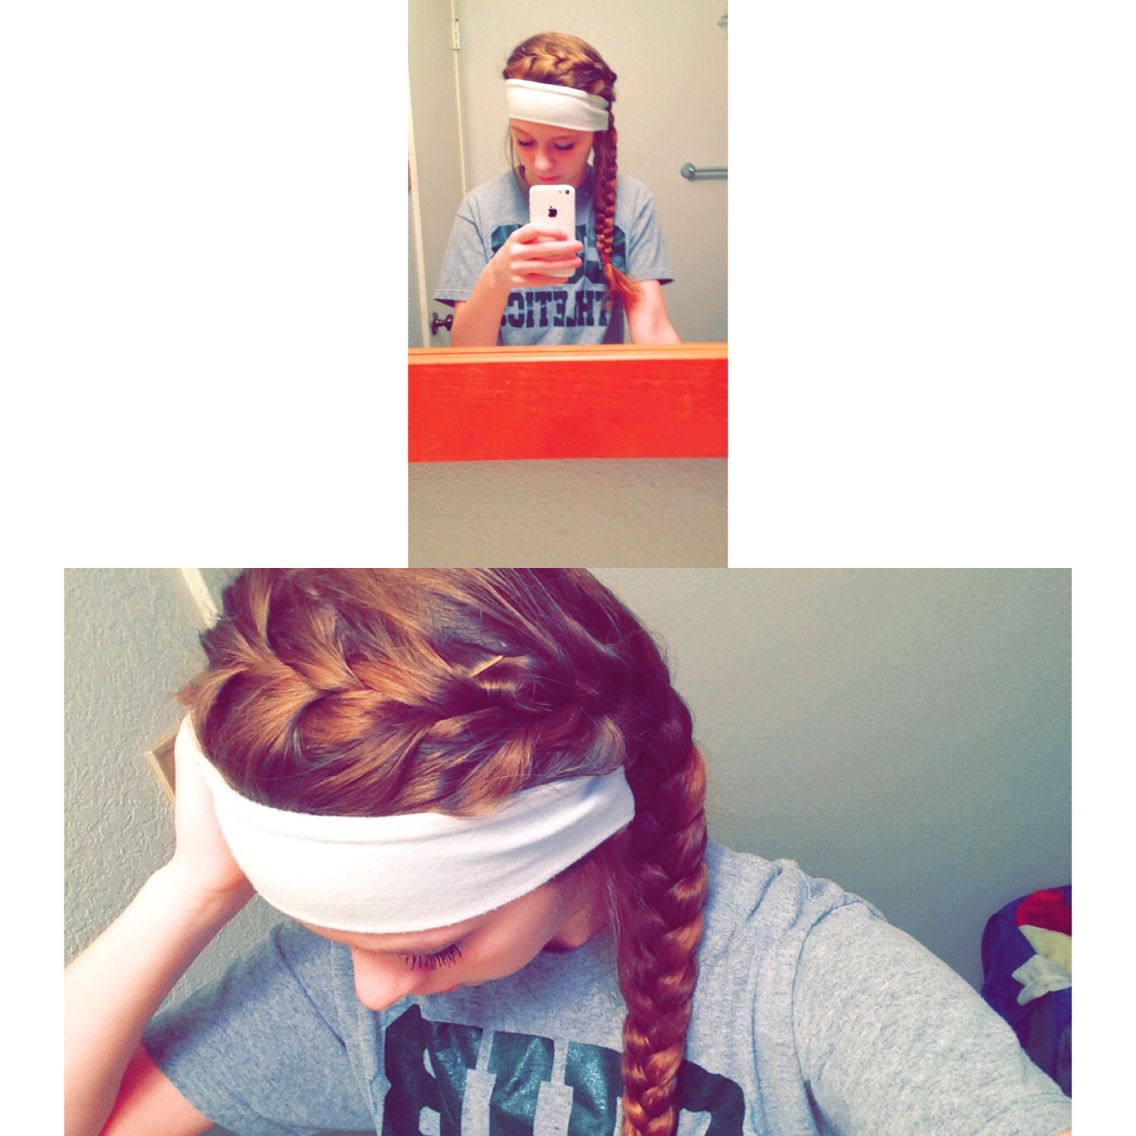 How i wore my hair for the last basketball game for me